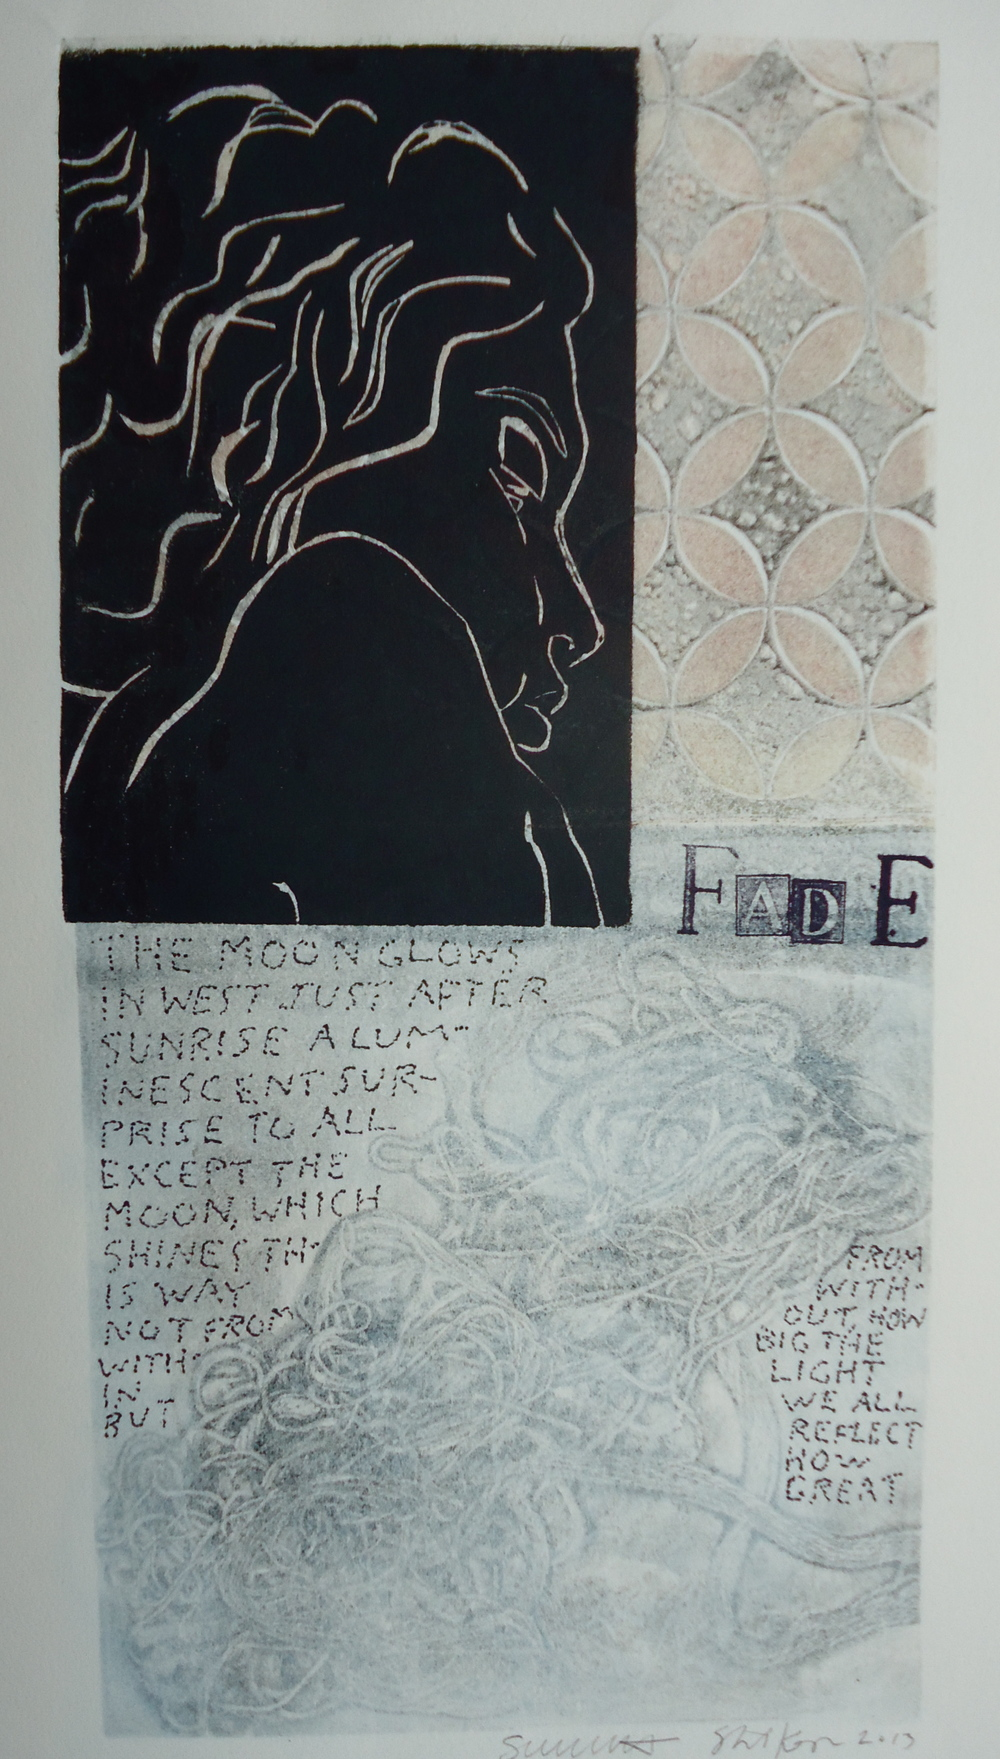 Fade   6 x 12 inches  mixed media  image: Susan Webster  hand written and stamped text: Stuart Kestenbaum  2013